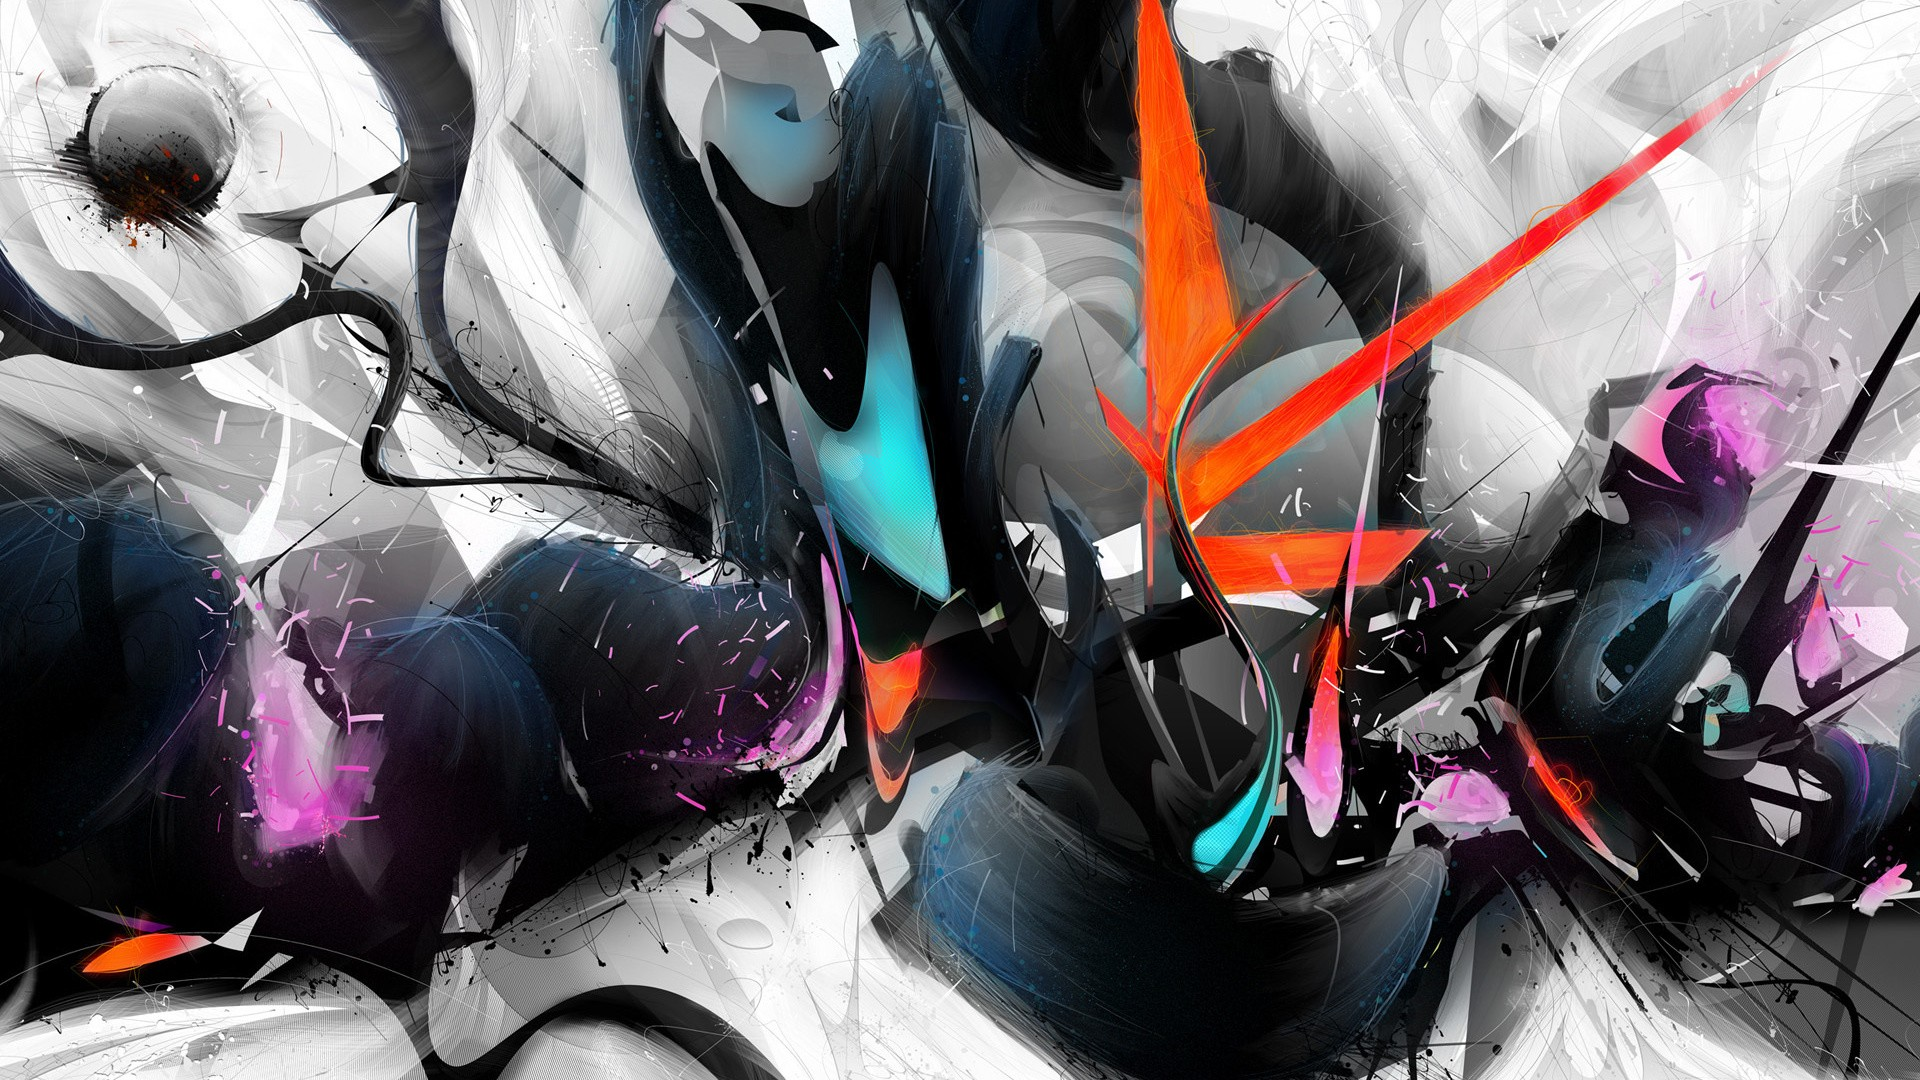 Cool Abstract Wallpaper Designs Hd Background Foto Artis   Candydoll 1920x1080